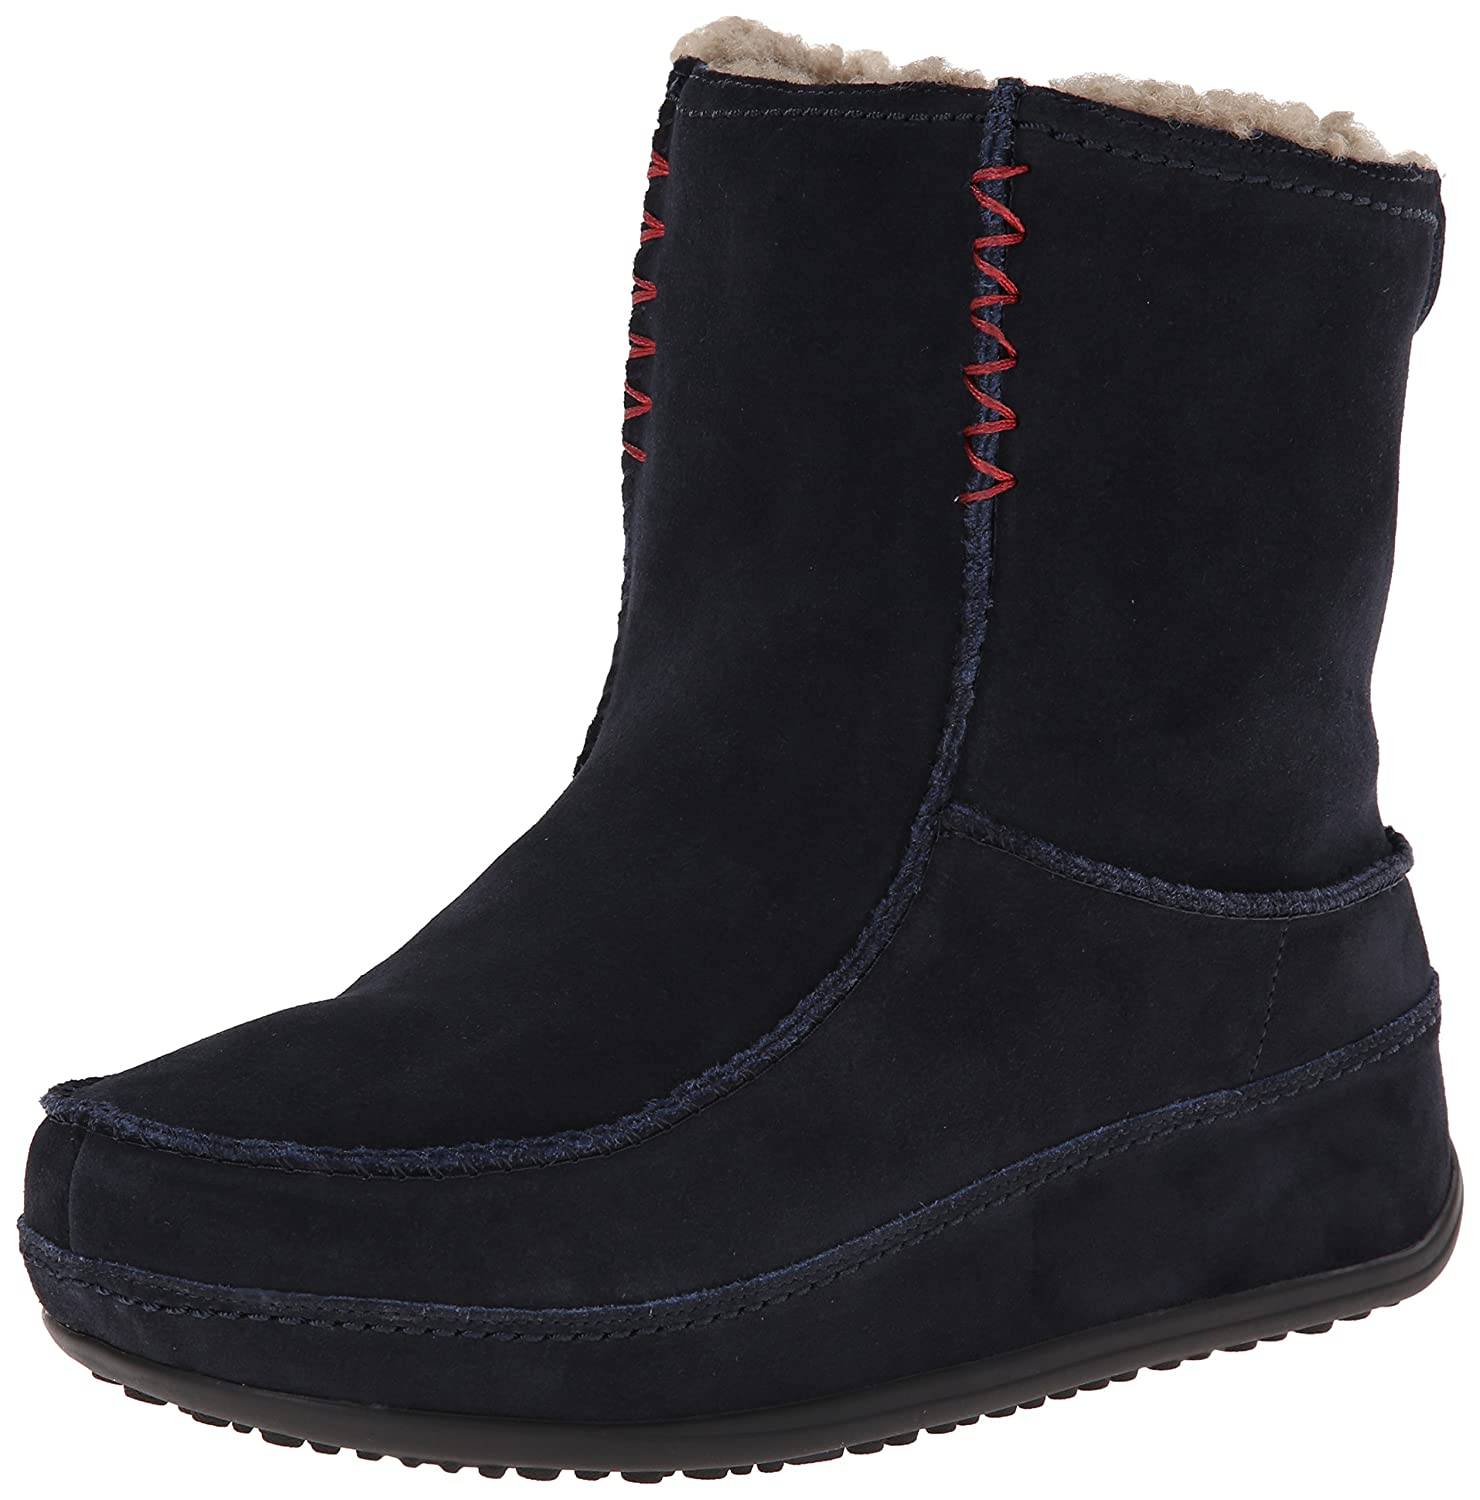 Fitflop Women's Mukluk MOC 2 Moccasin Boots